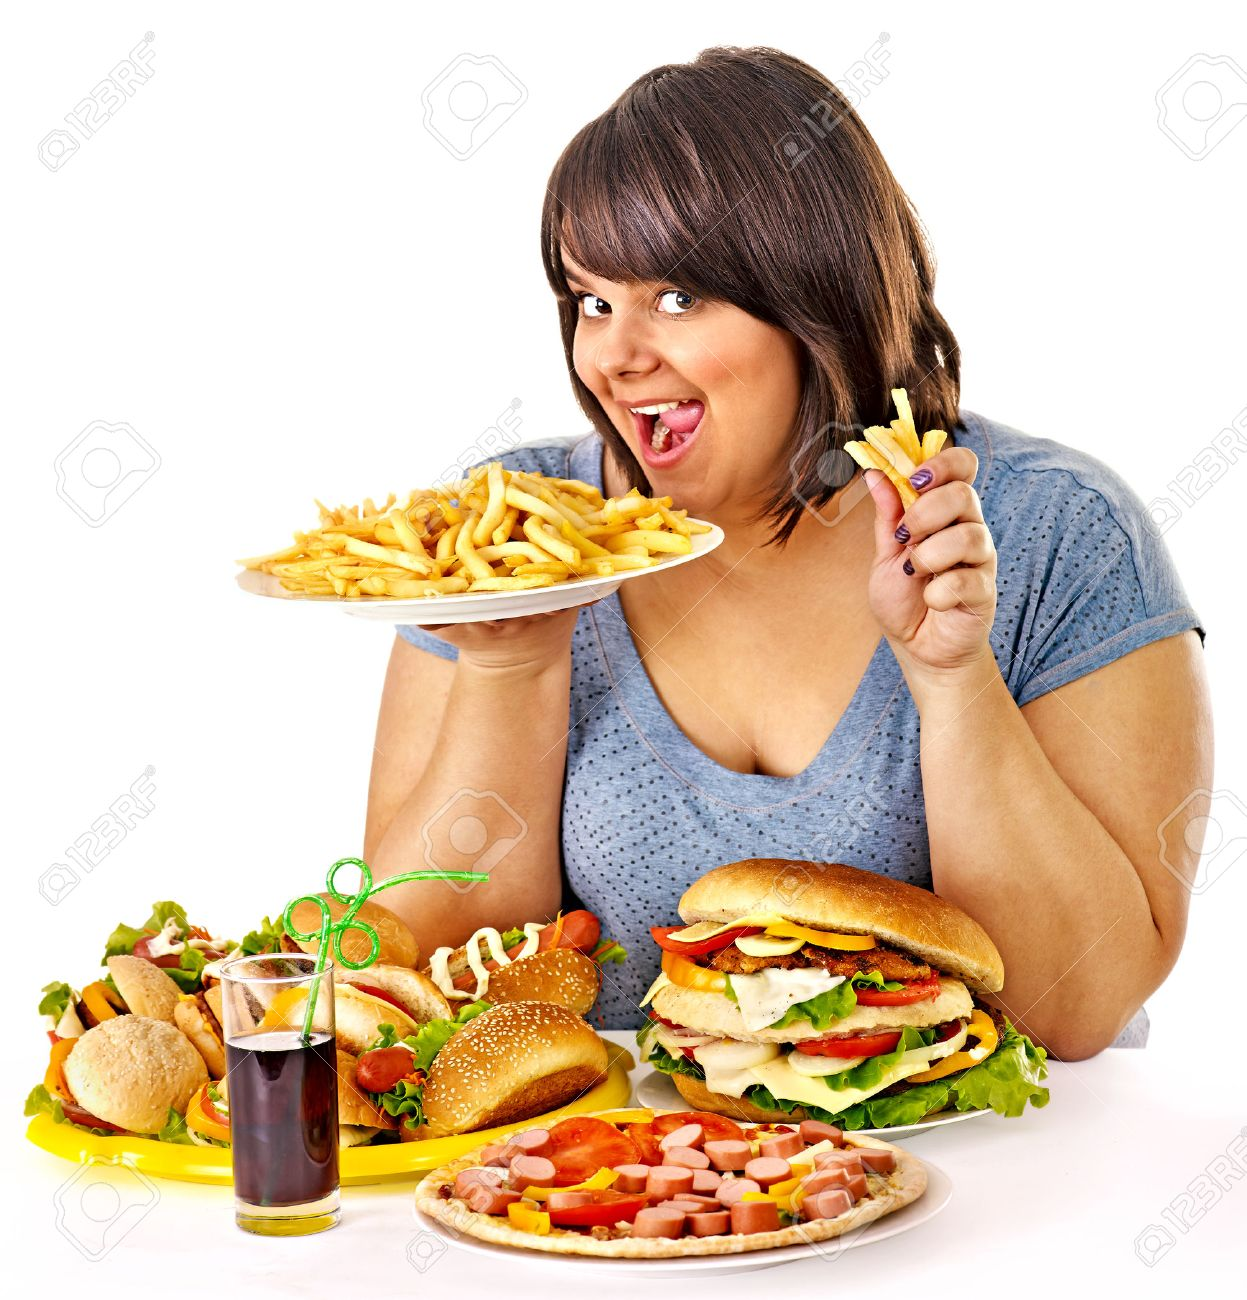 Overweight woman eating fast food. - 27304821